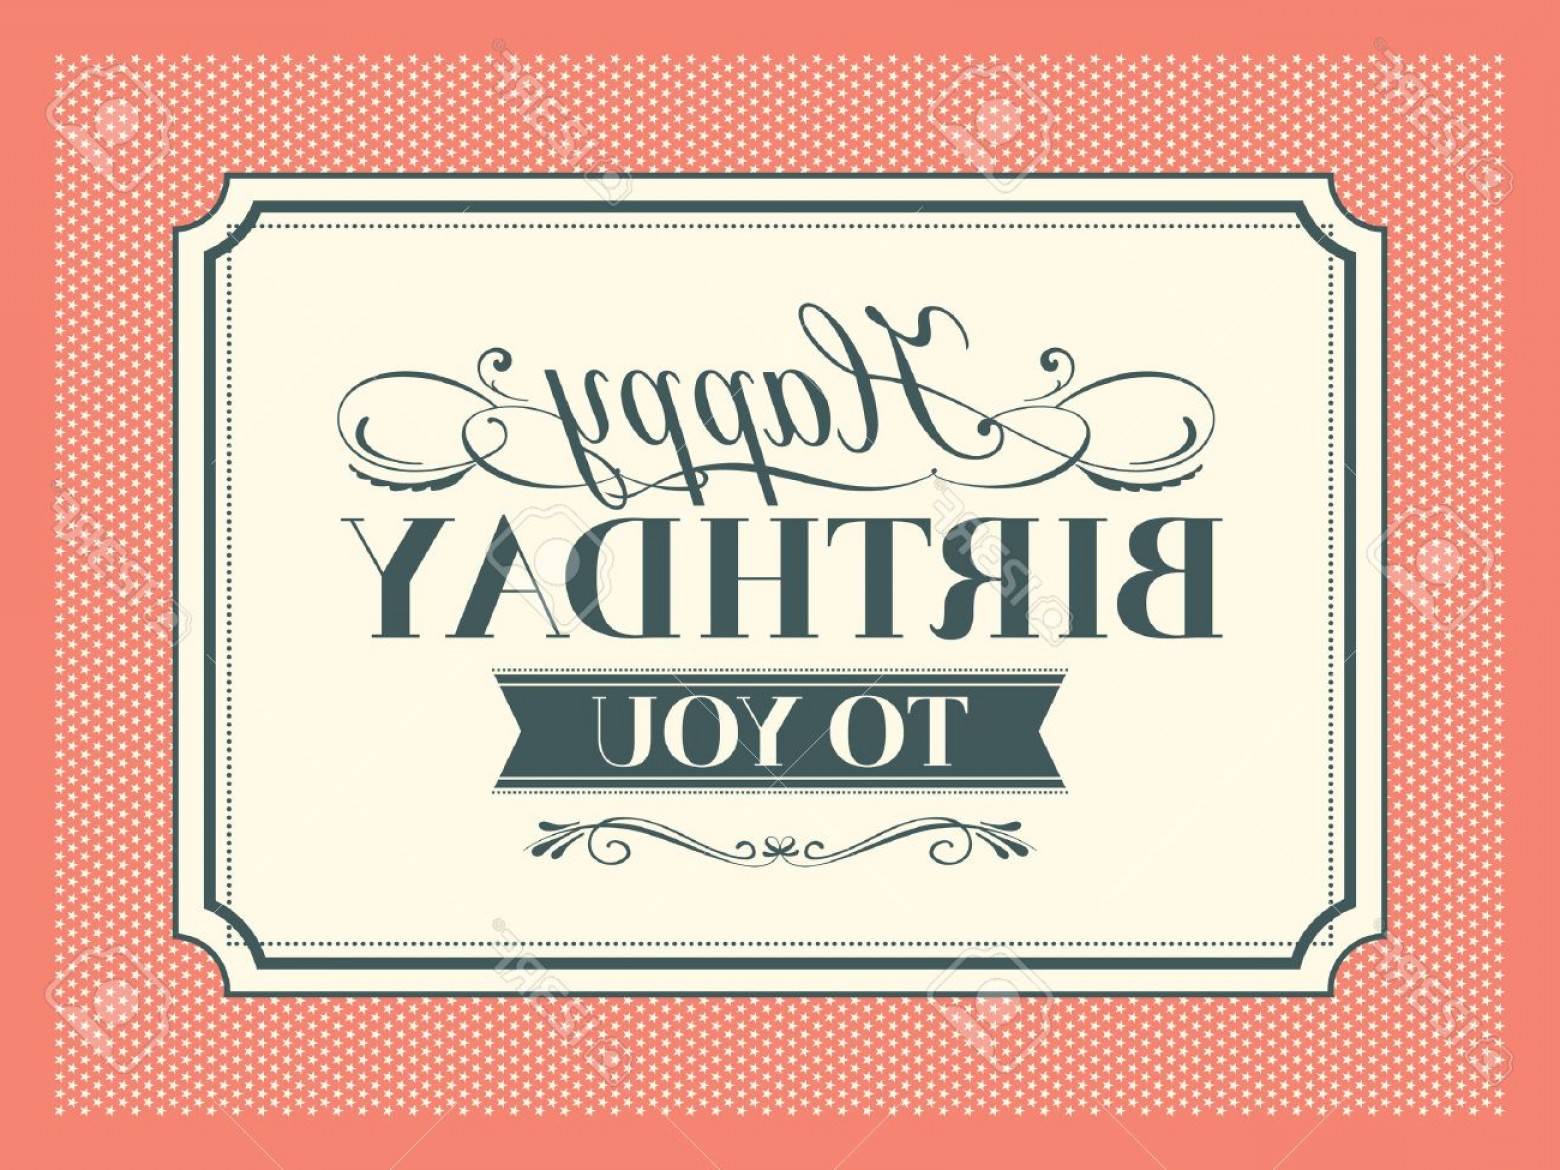 Birthday Card Vector Frame Designs: Photovintage Happy Birthday Card Frame Design